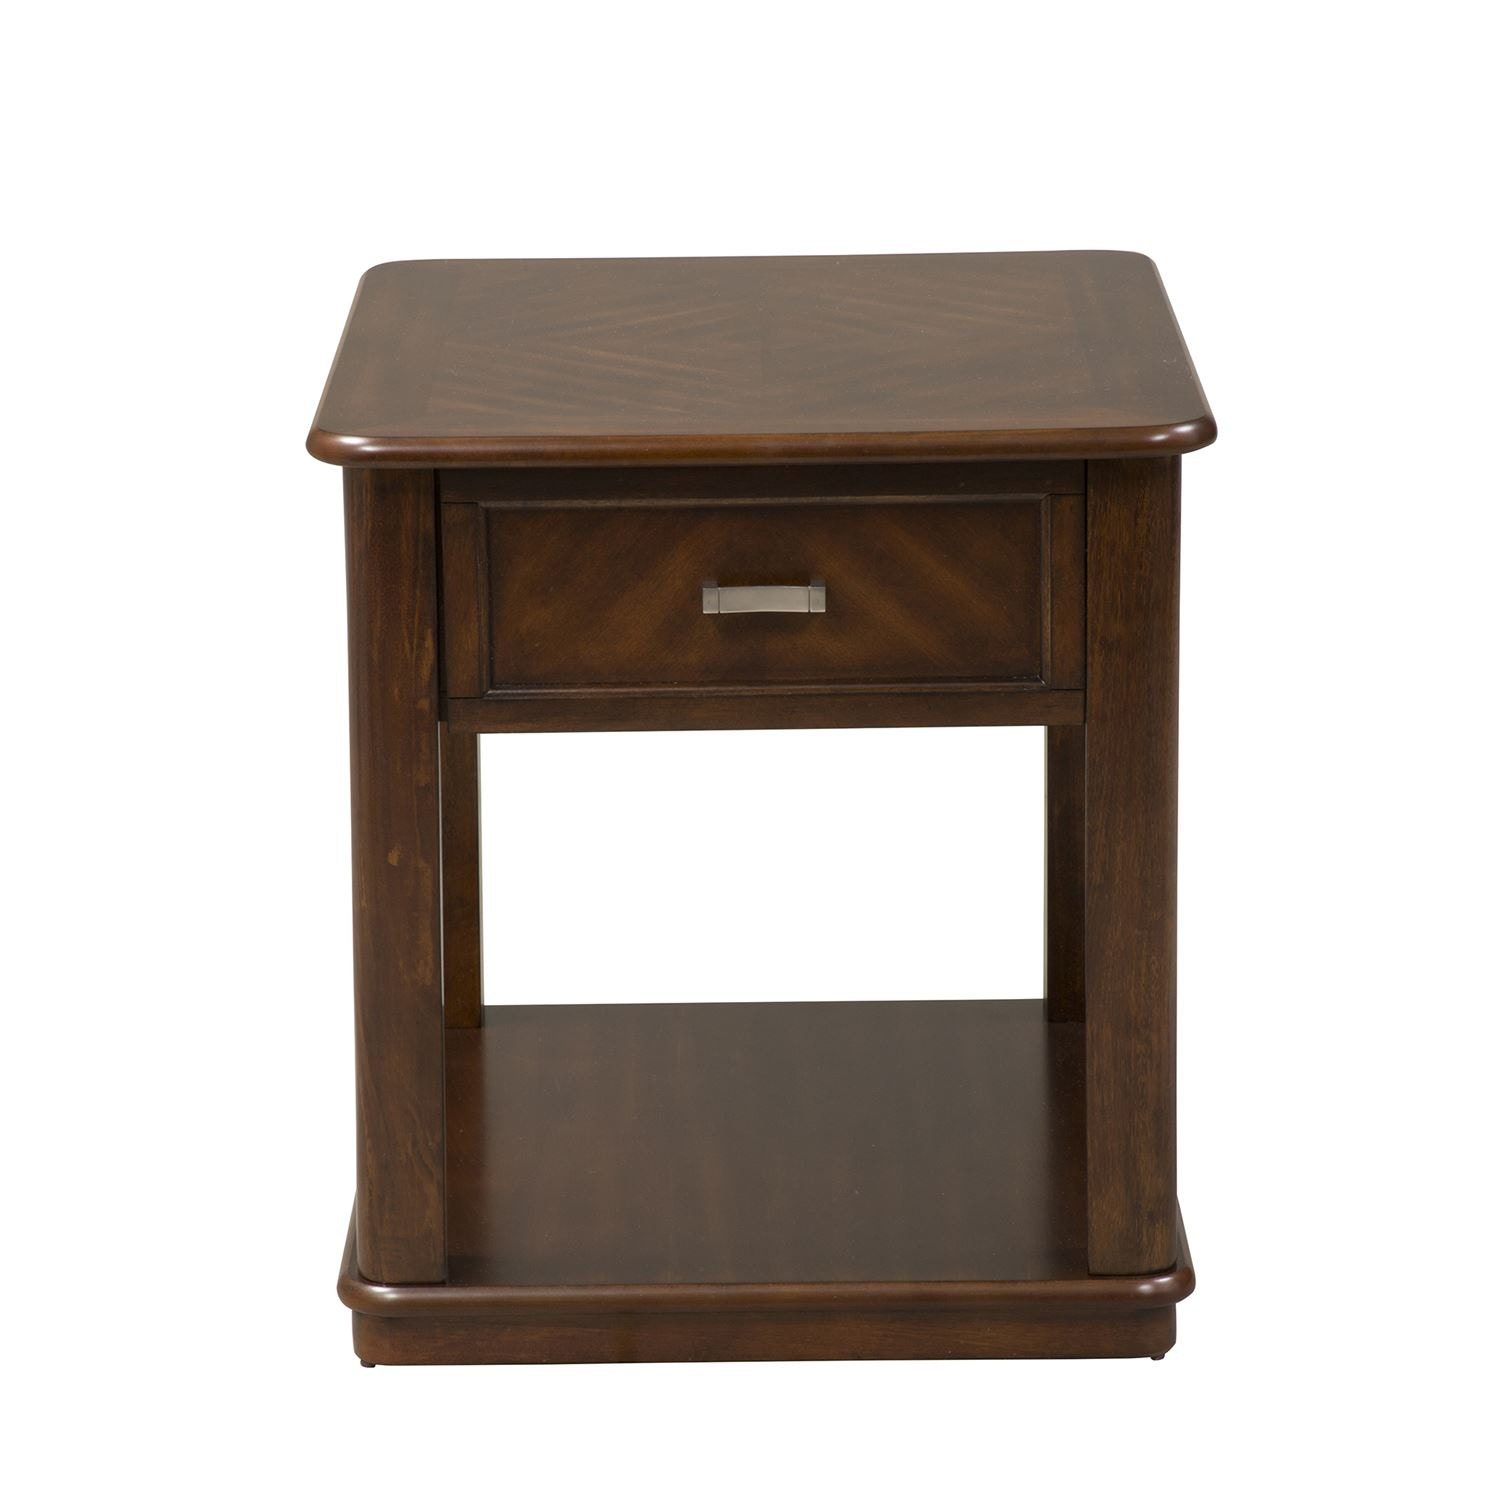 Liberty Furniture Living Room End Table 424 OT1020   Turner Furniture  Company   Avon Park And Sebring, FL